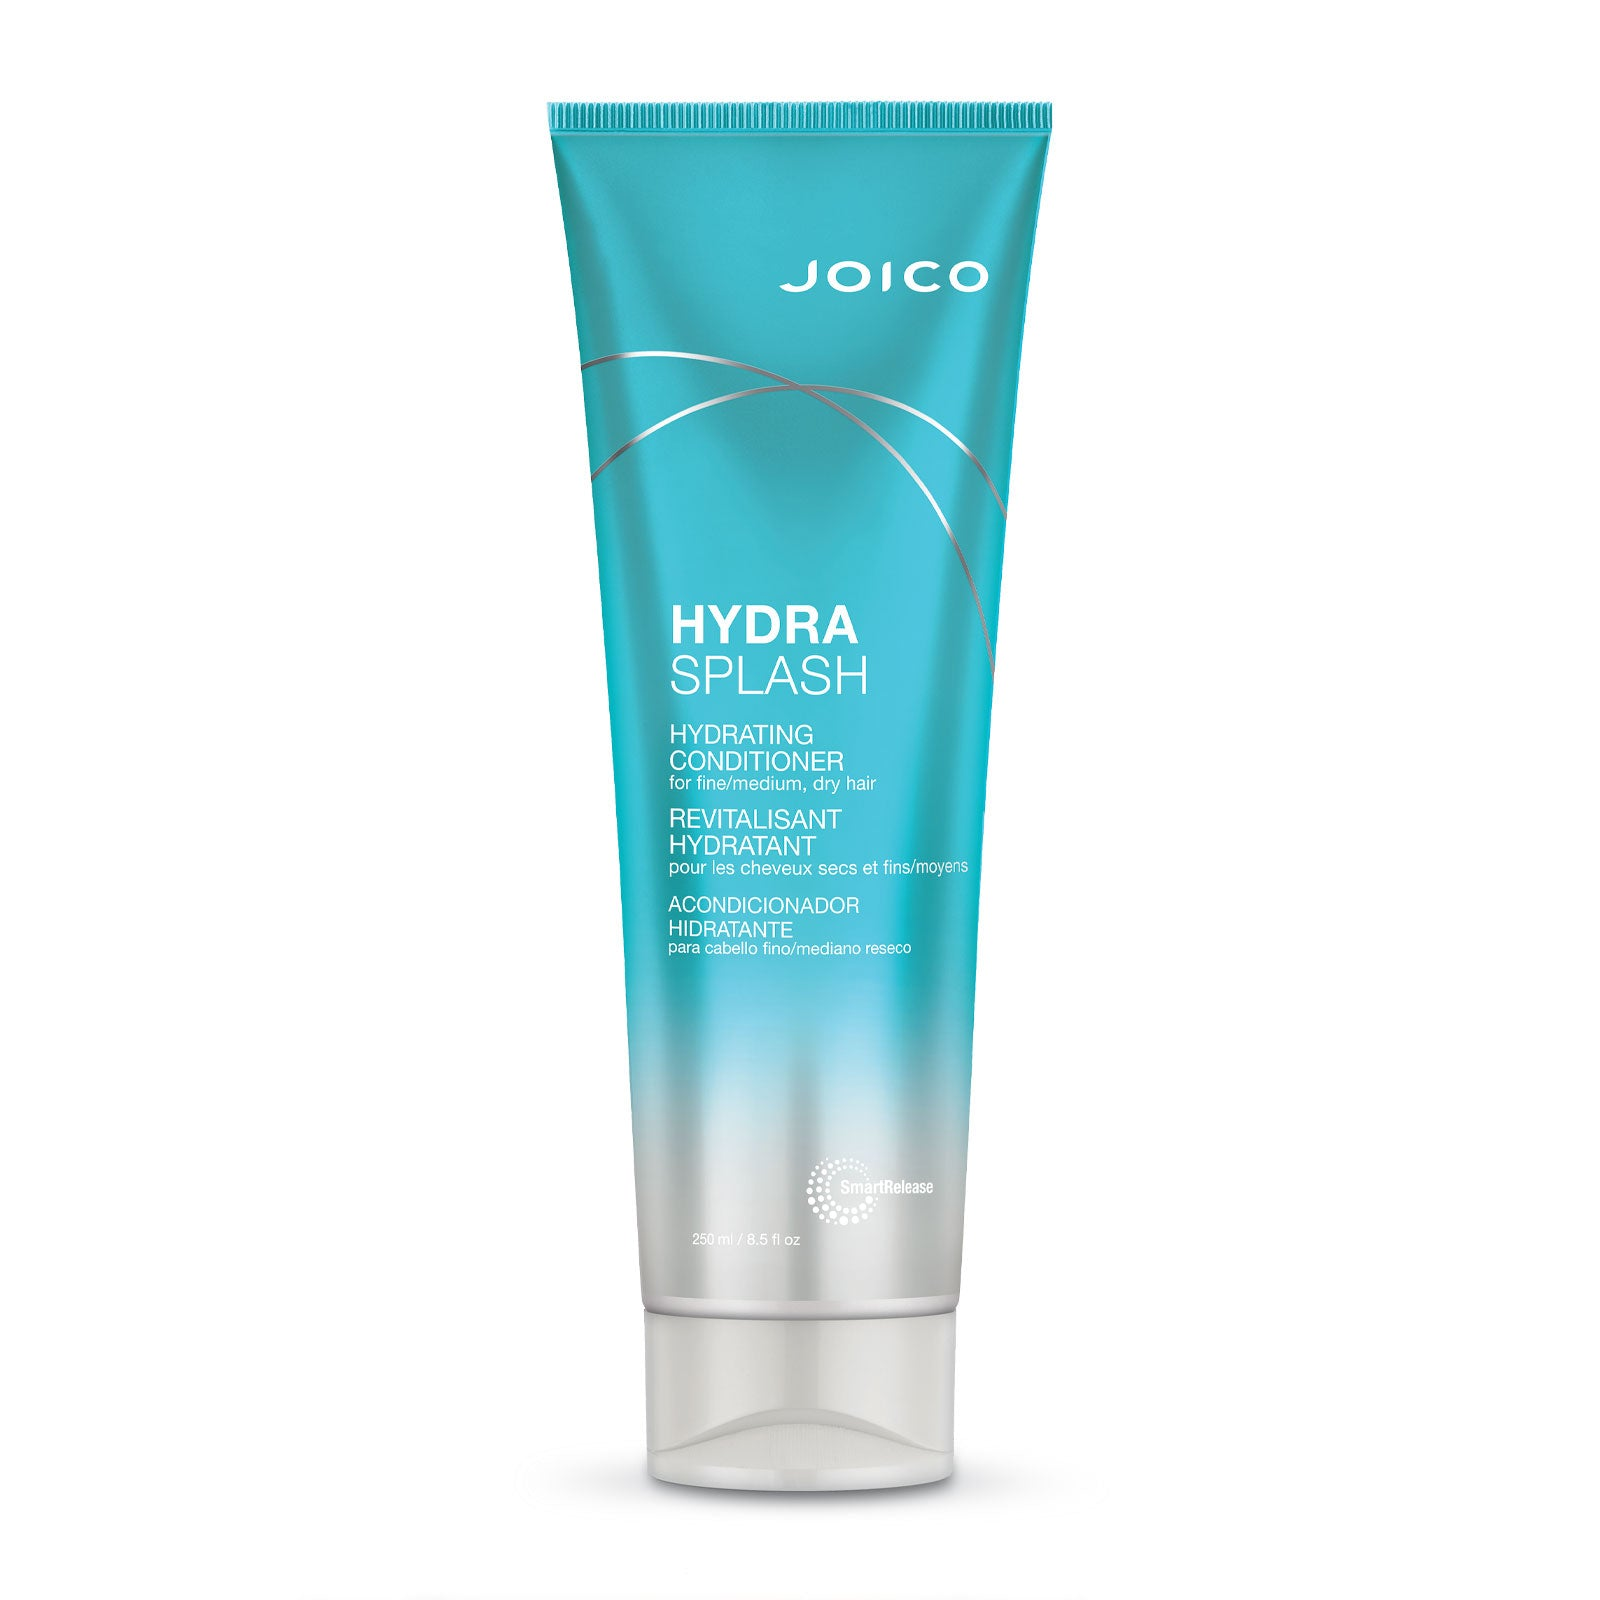 Joico Hydra Splash Hydrating Conditioner For Fine-Medium Dry Hair 250ml